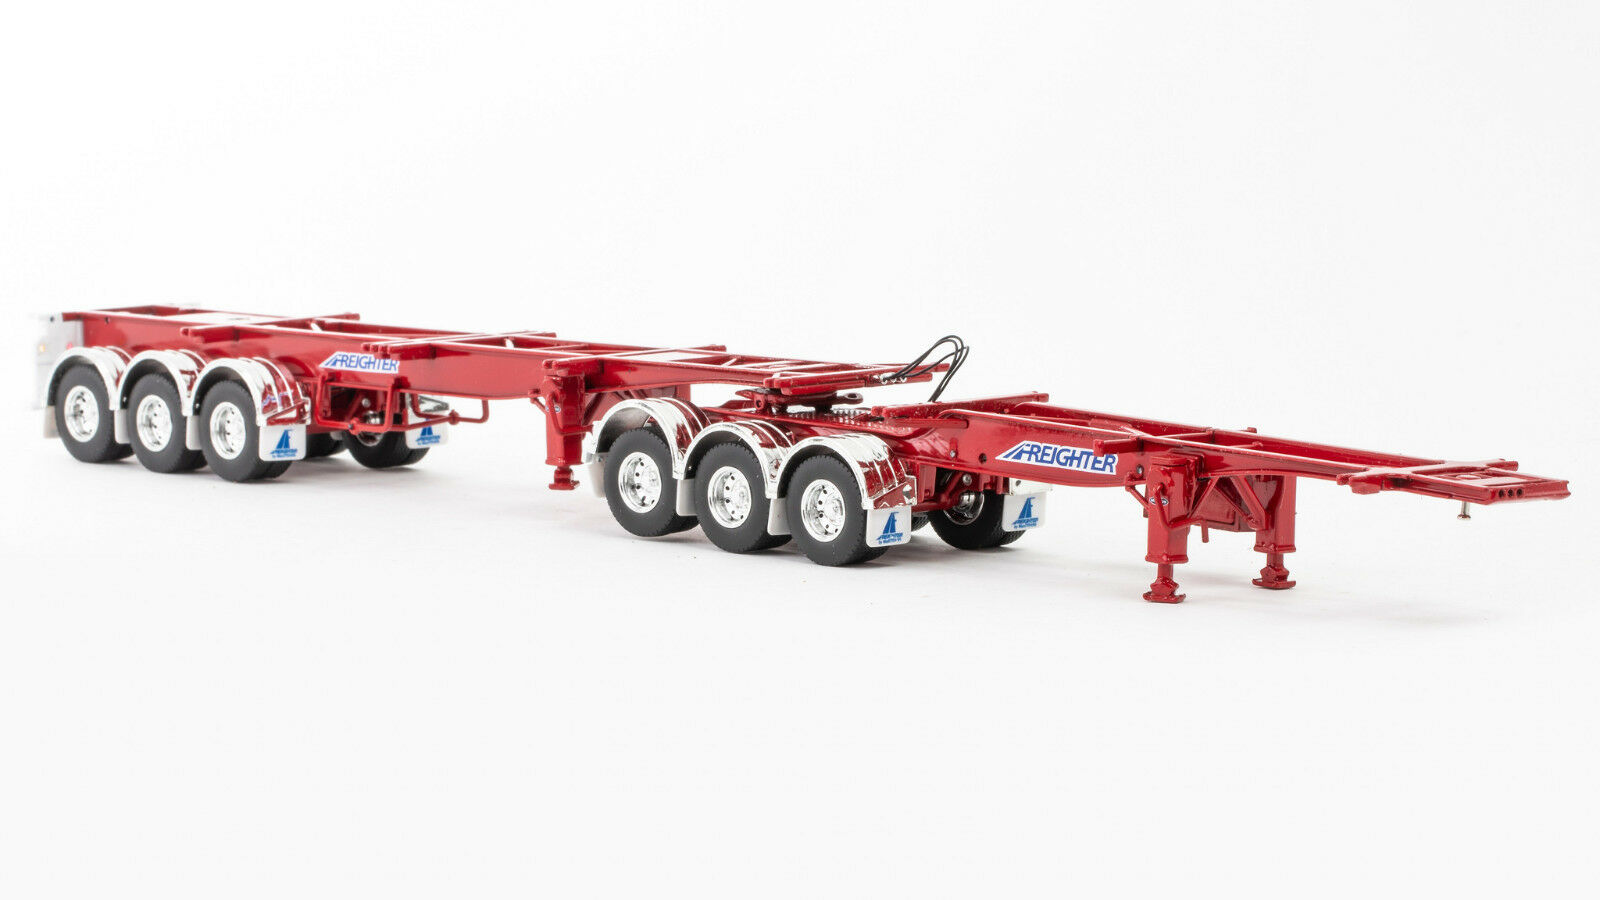 Freighter -Skel B-Double Trailer Set -Red 1 50 Scale By Drake  ZT09154